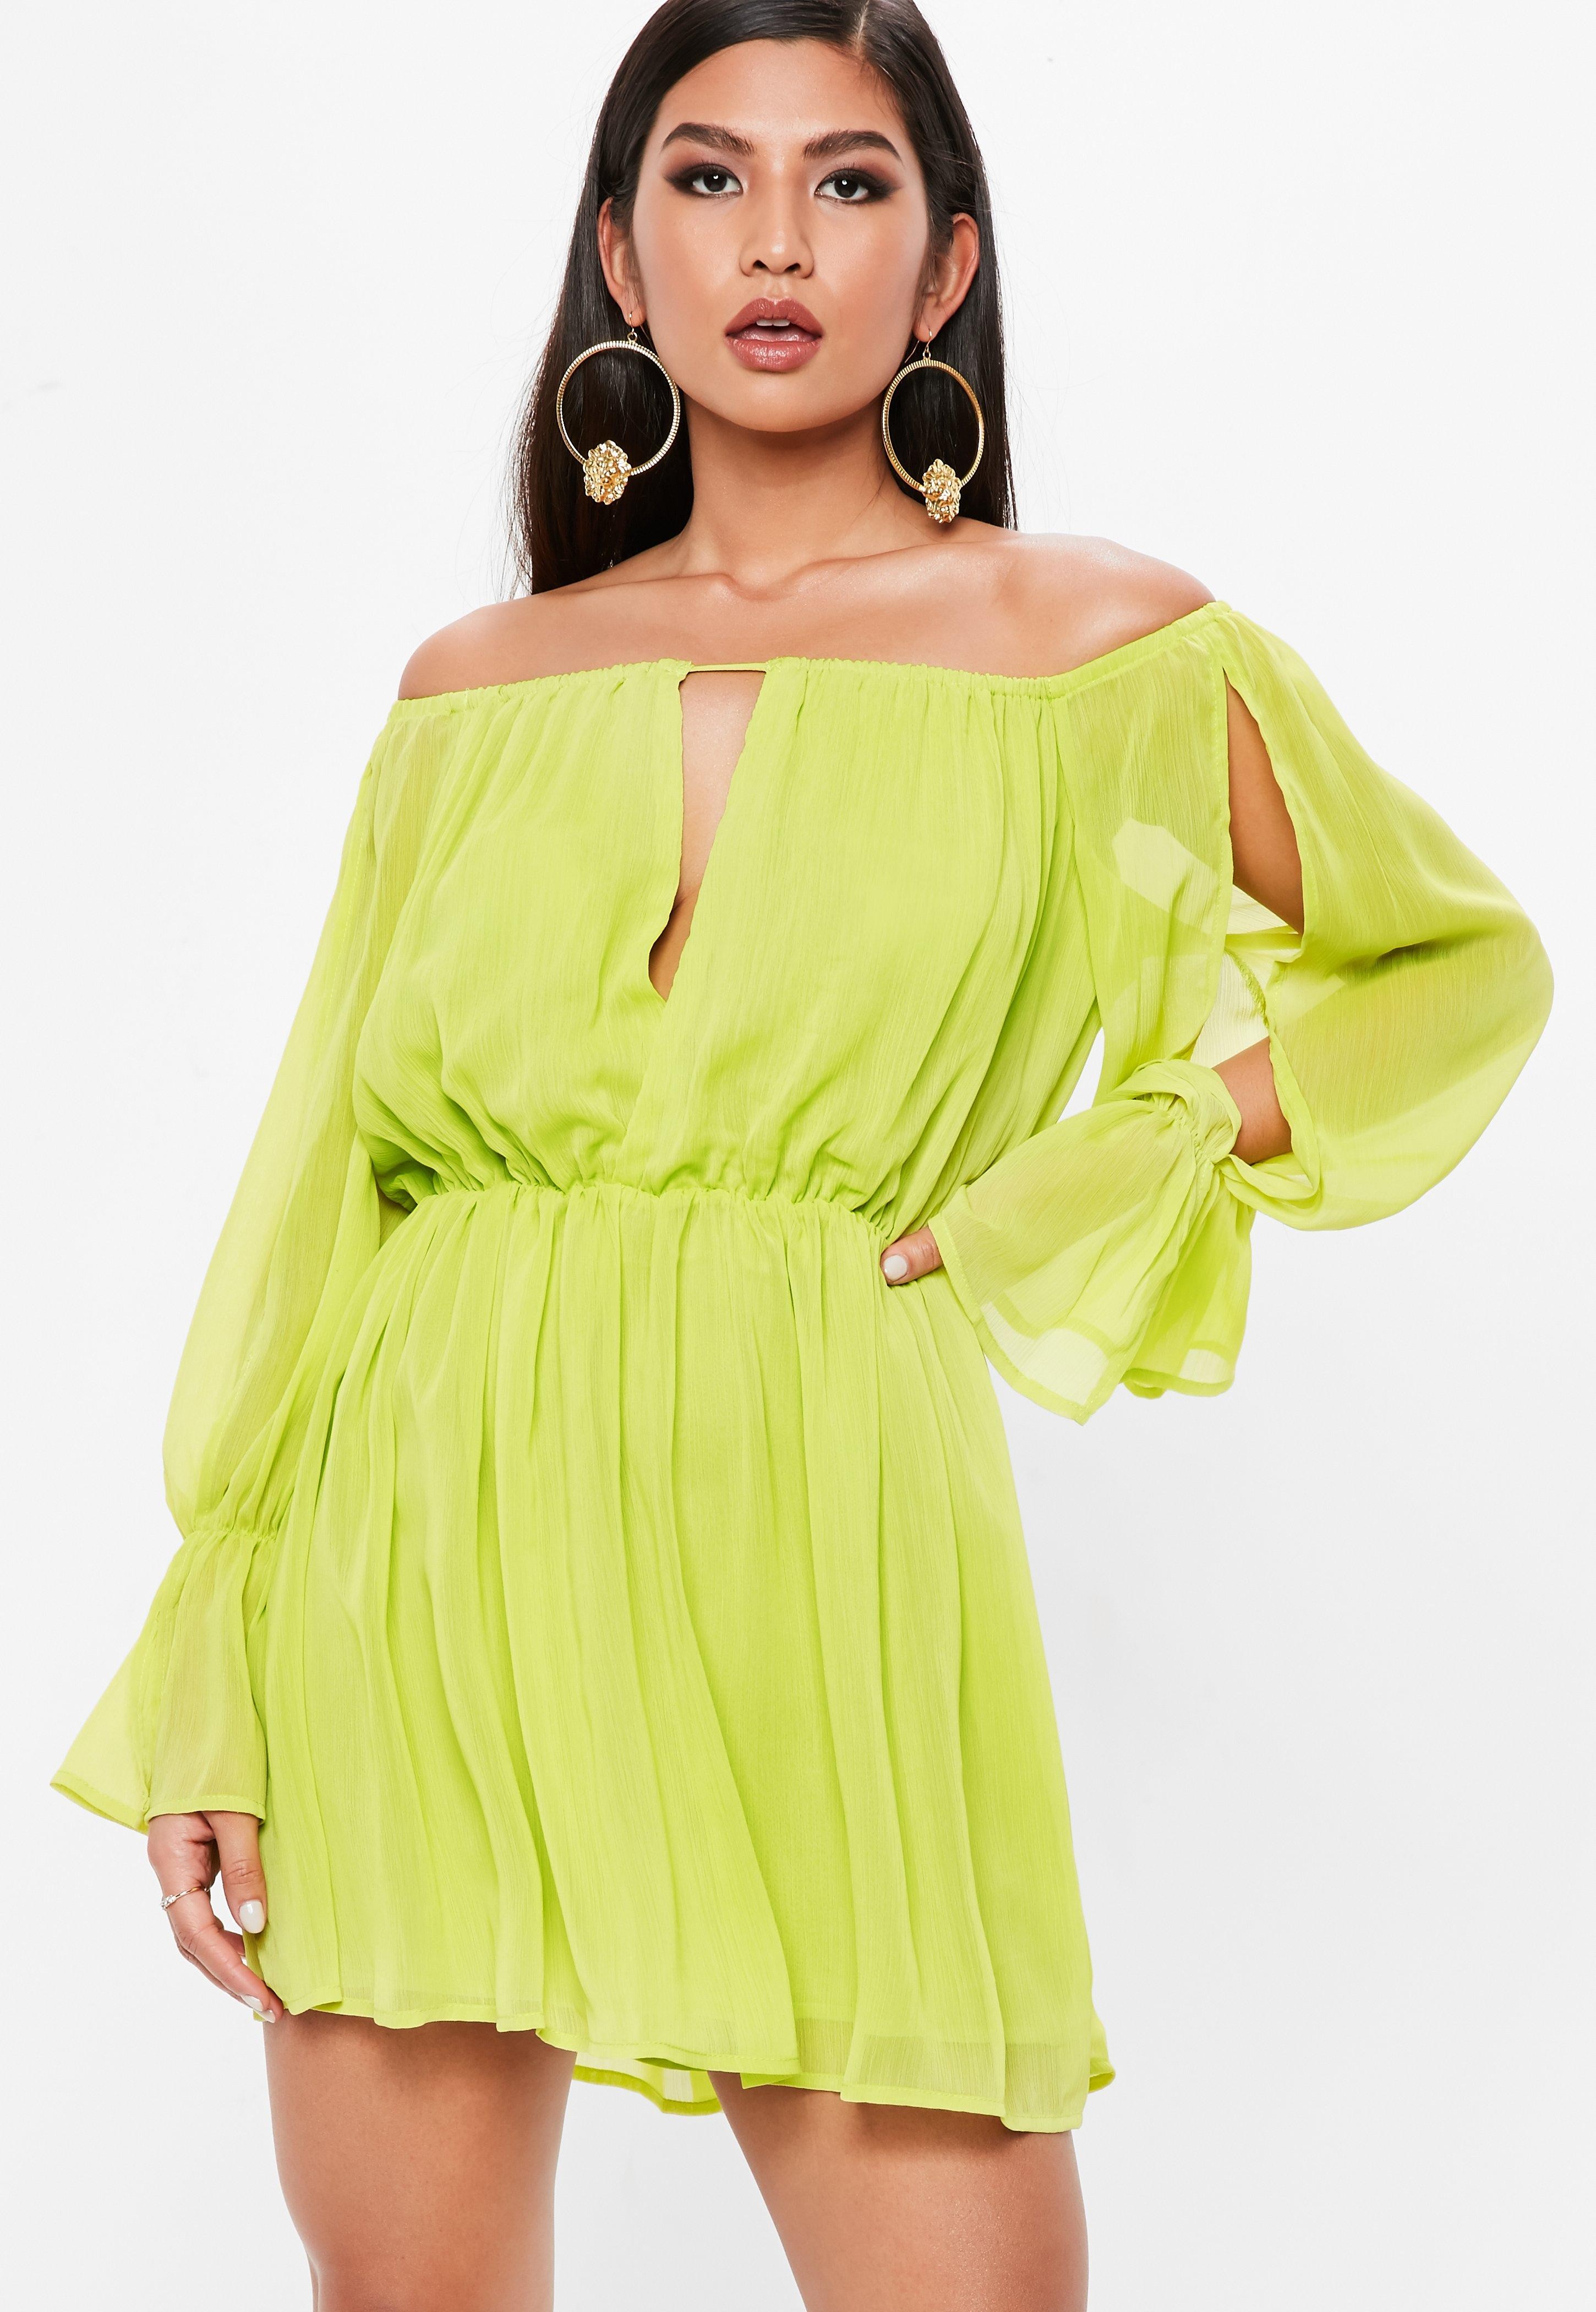 Yellow Cocktail Dresses for Women